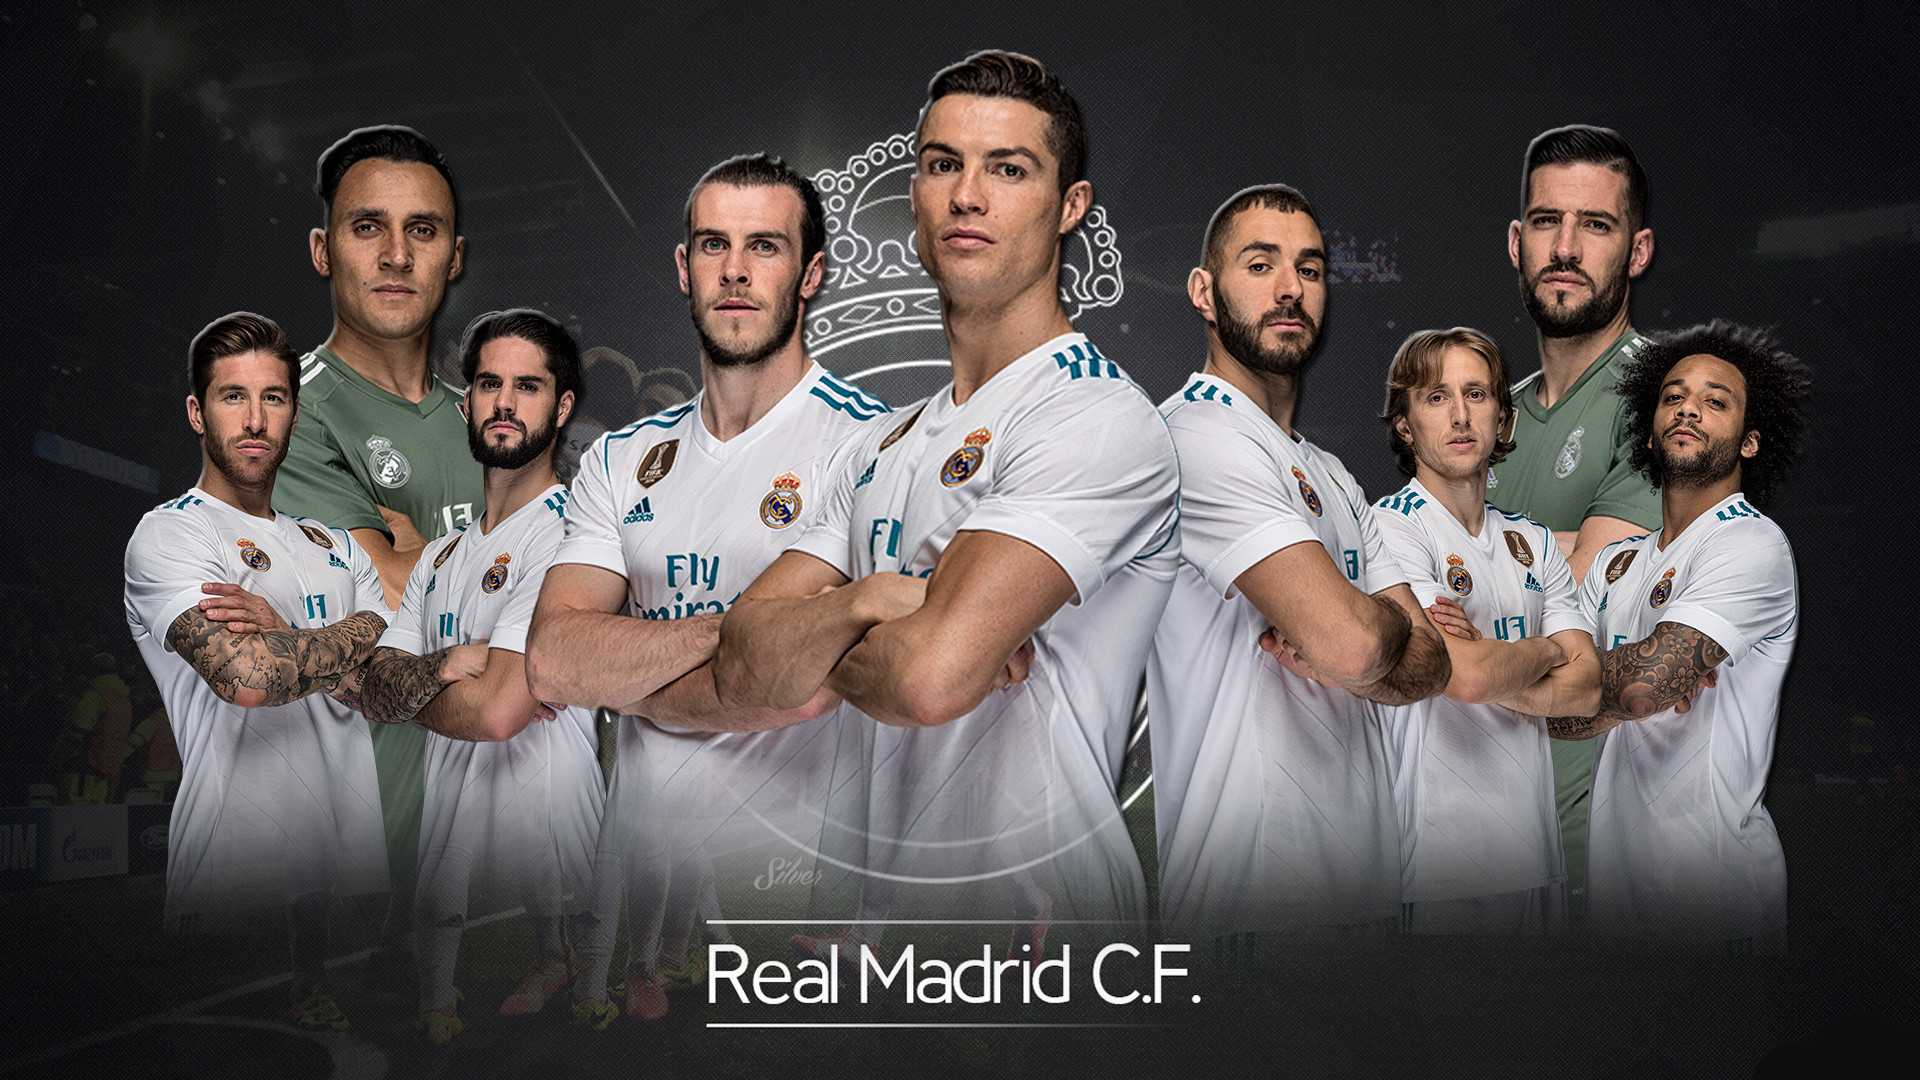 real madrid hd wallpapers | wallpapersimages